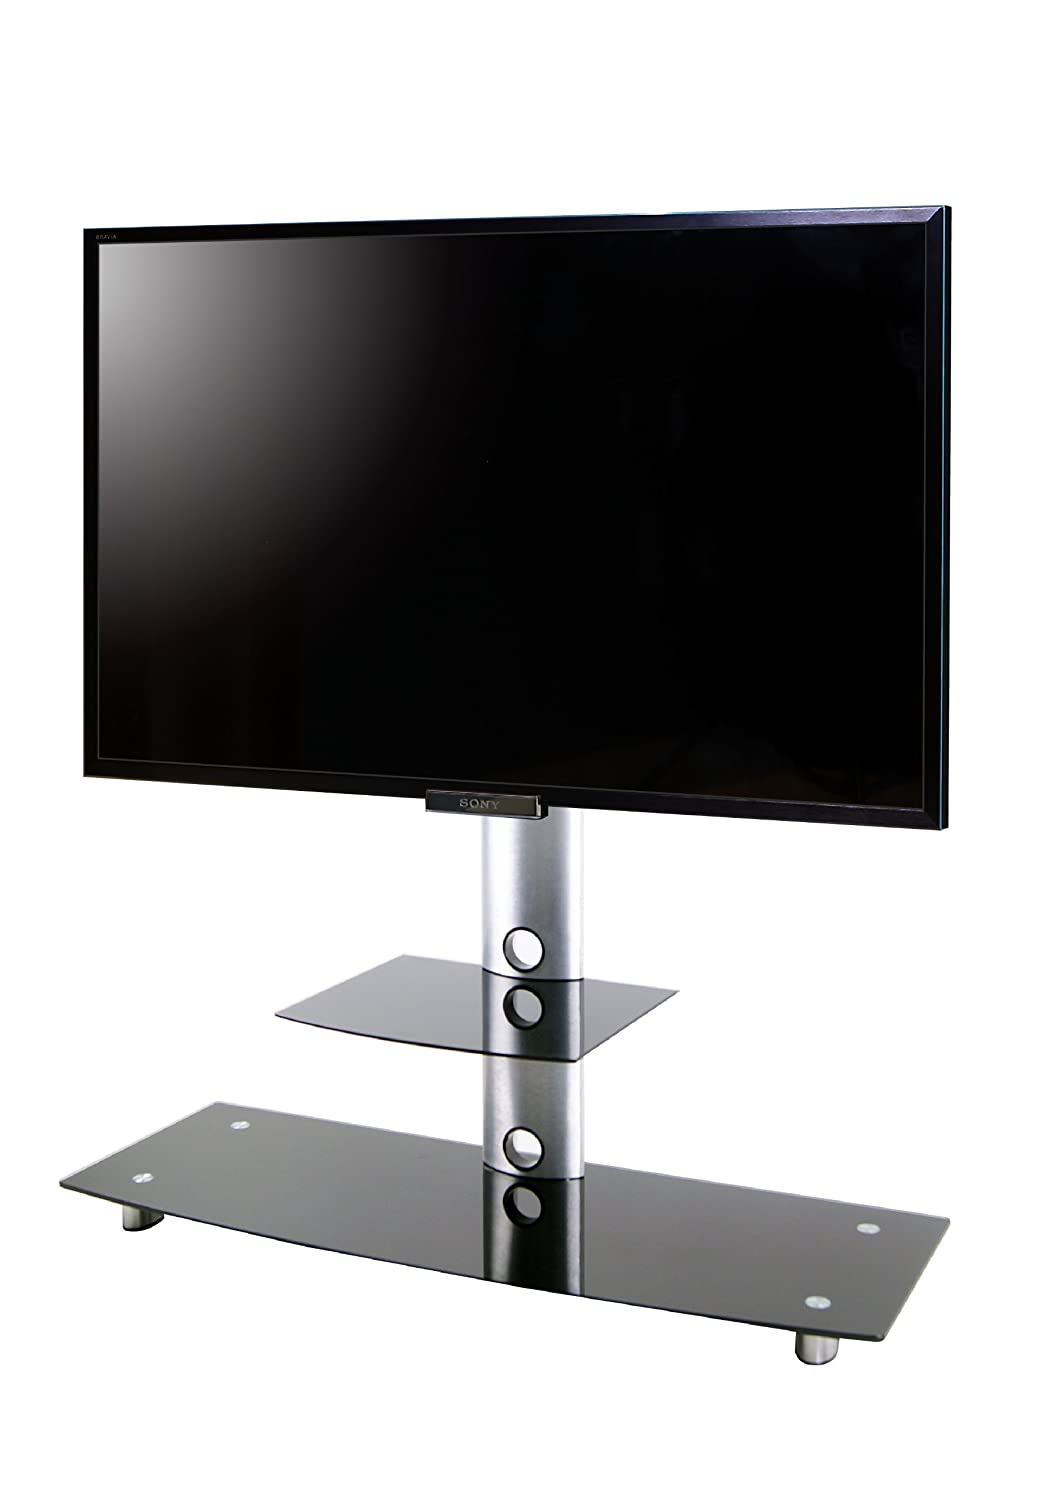 Inotek Starlight 3265 Meuble Tv Avec Potence Support Orientable  # Meuble Tv Barre De Son Integree